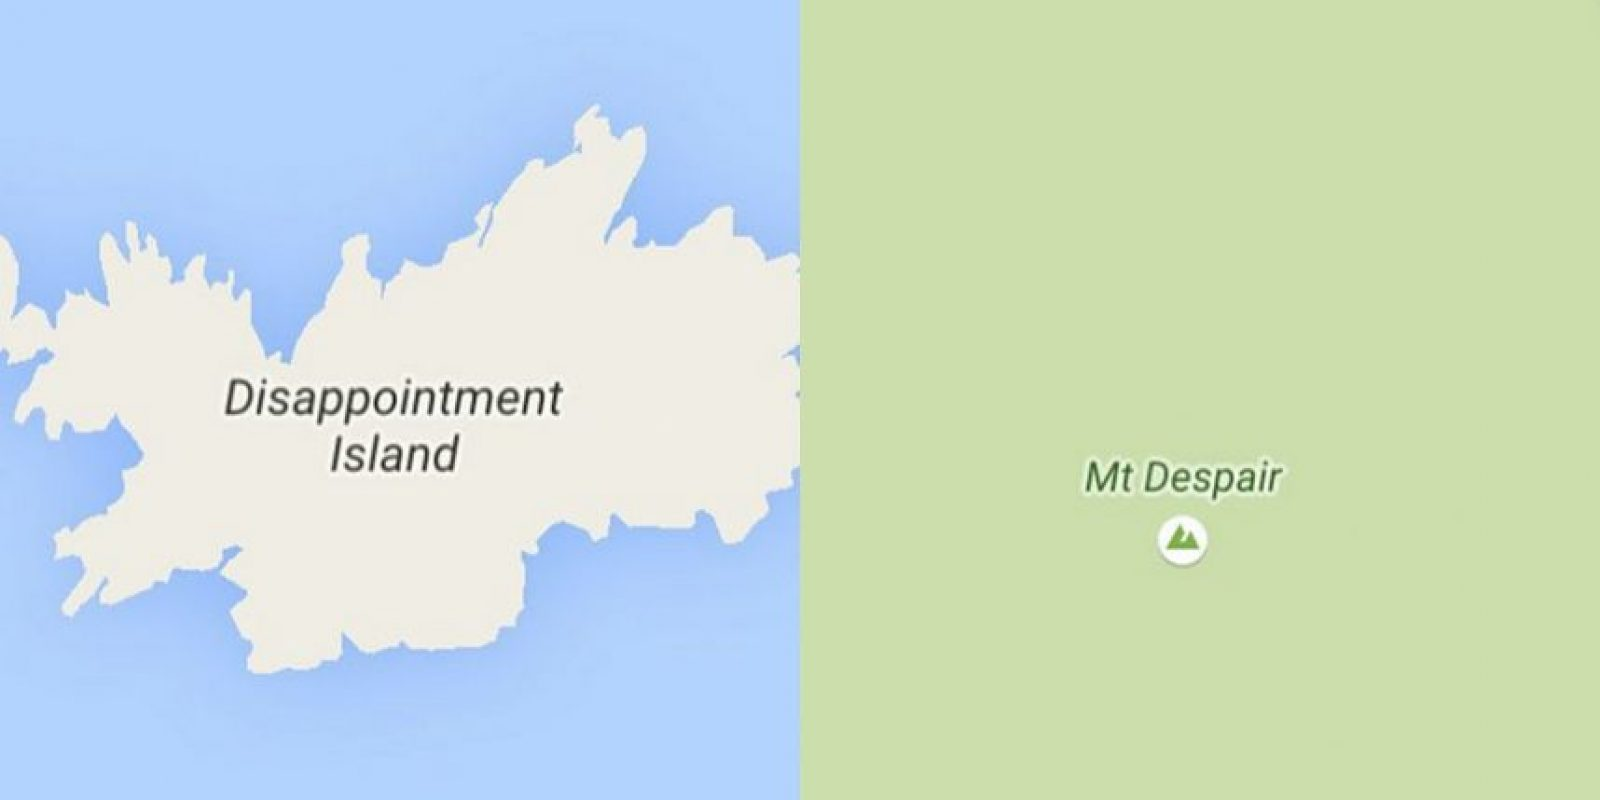 Disappointment Island (Auckland Islands, Nueva Zelanda) y Mt. Despair (Washington state, Estados Unidos). Foto: Vía Instagram @sadtopographies